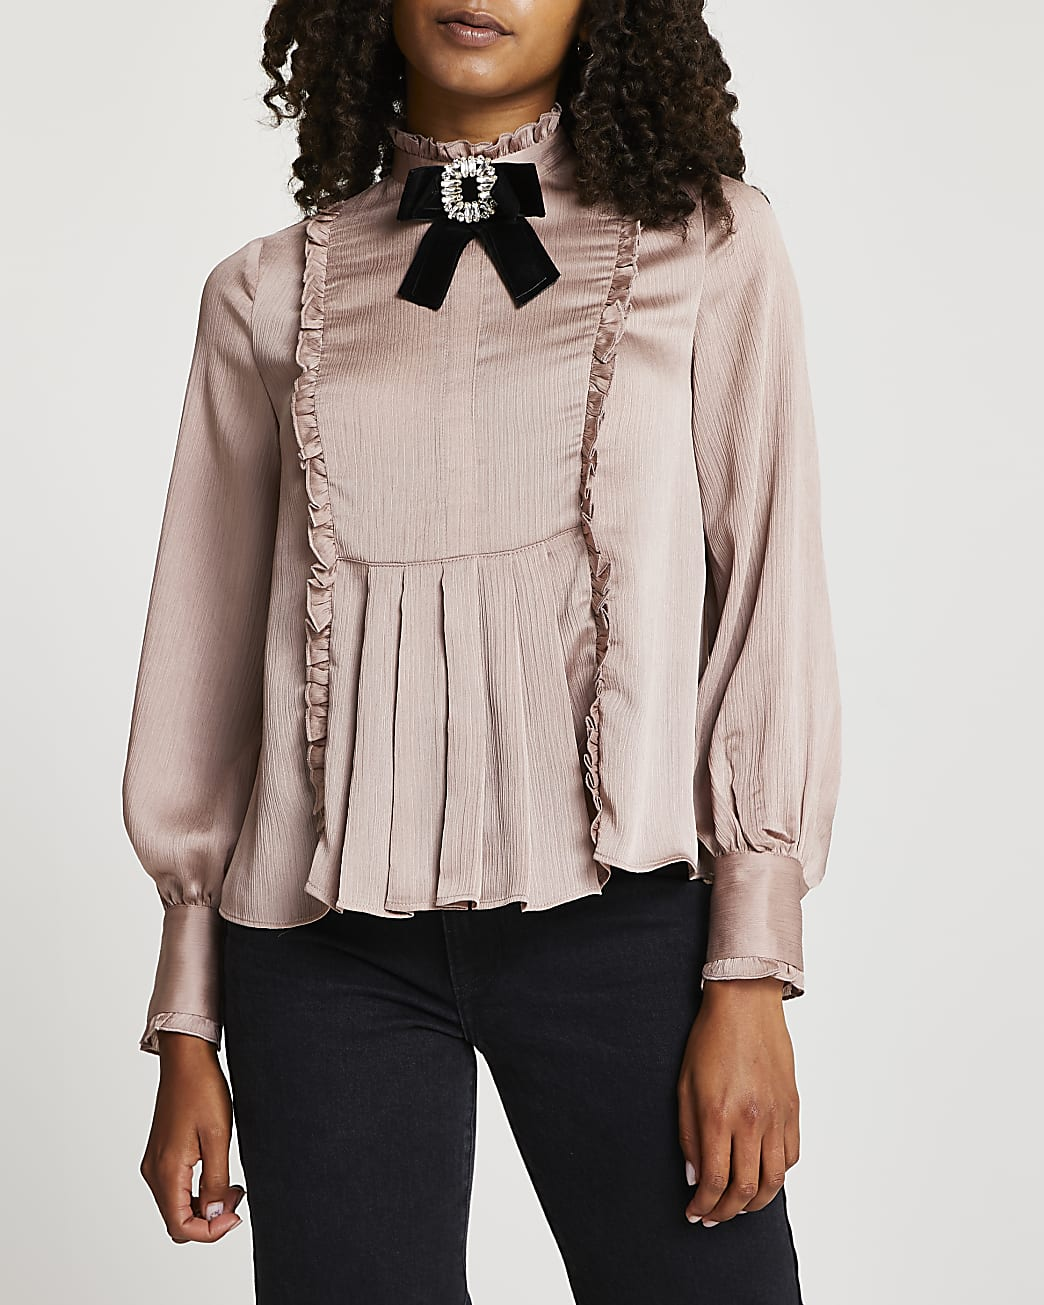 Pink bow brooch collared blouse top